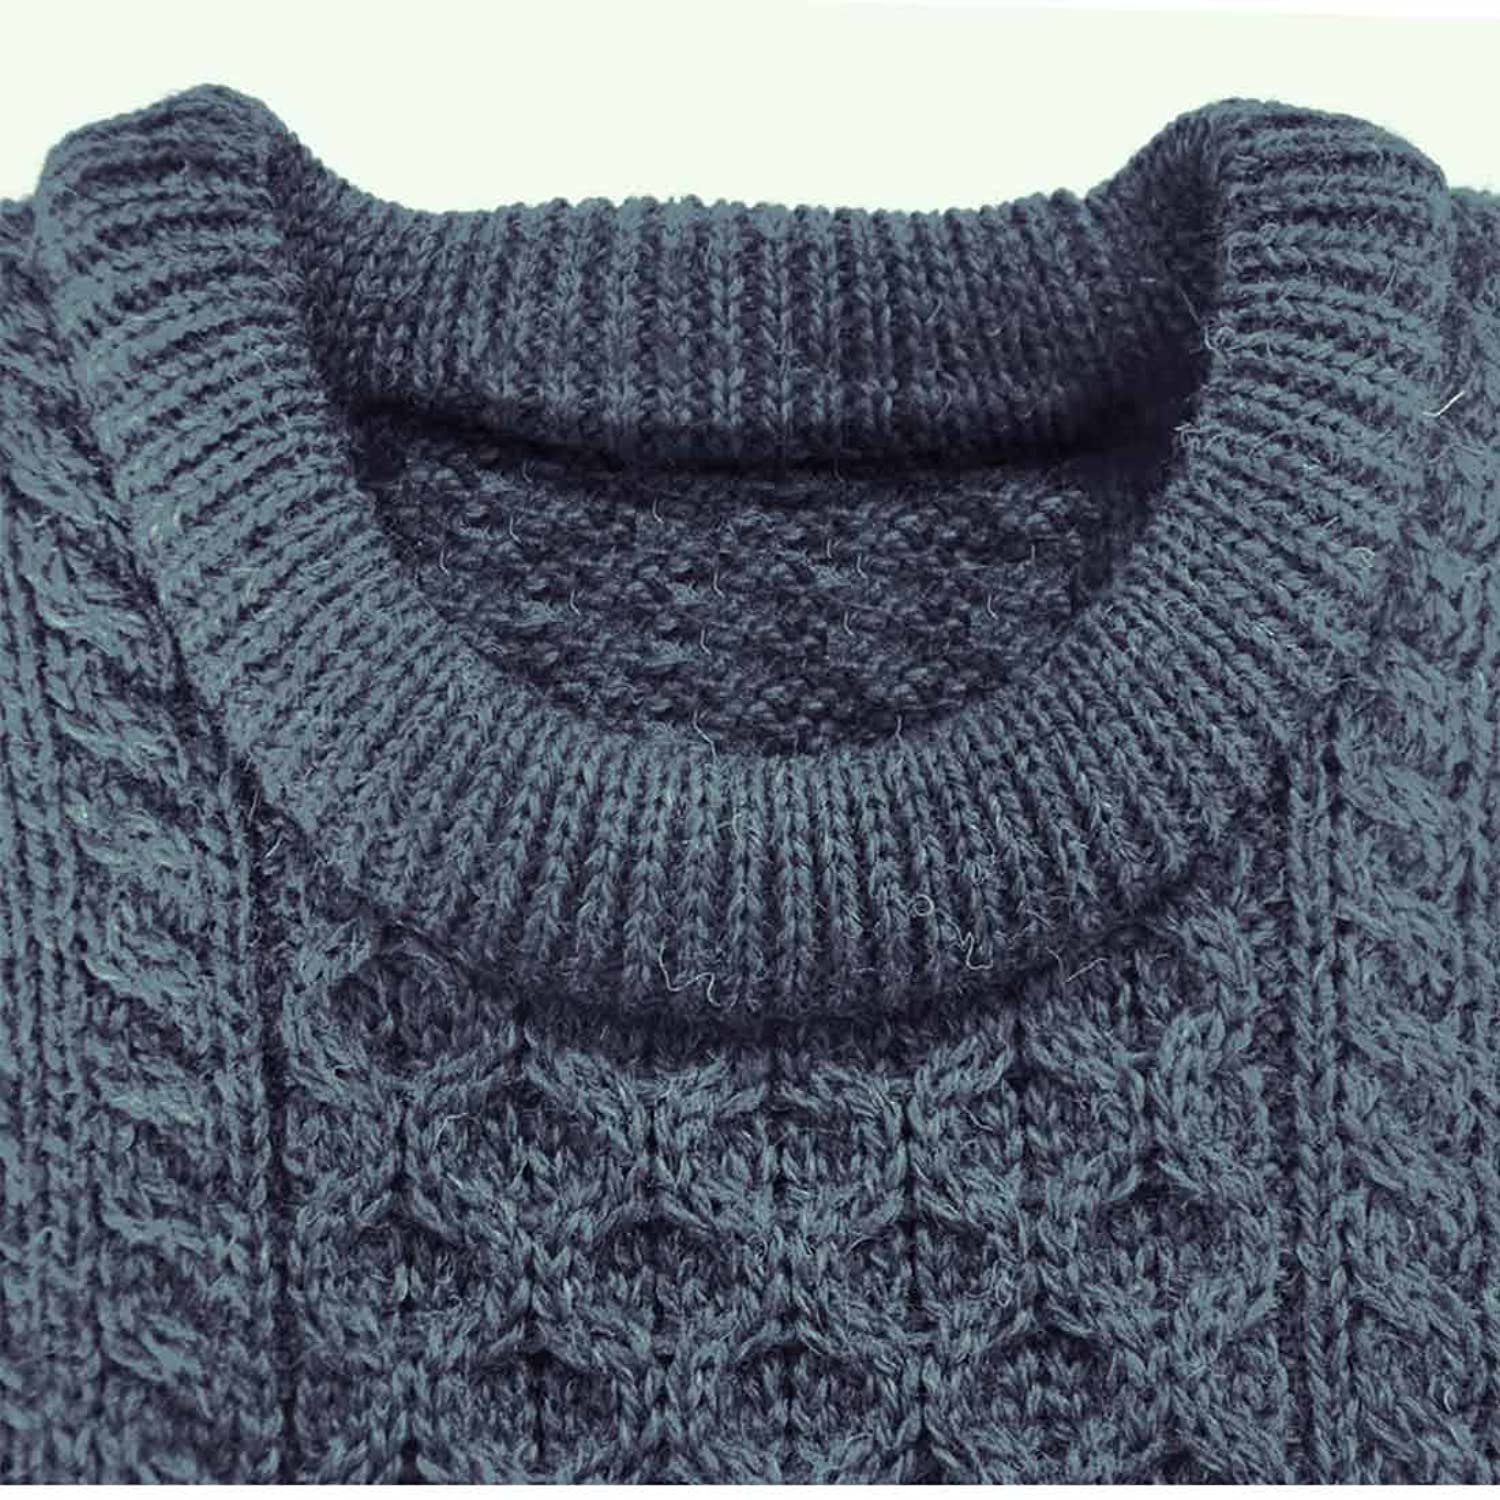 Navy 100 % Natural Wool Crew Neck Sweater With Cable Stitch Design